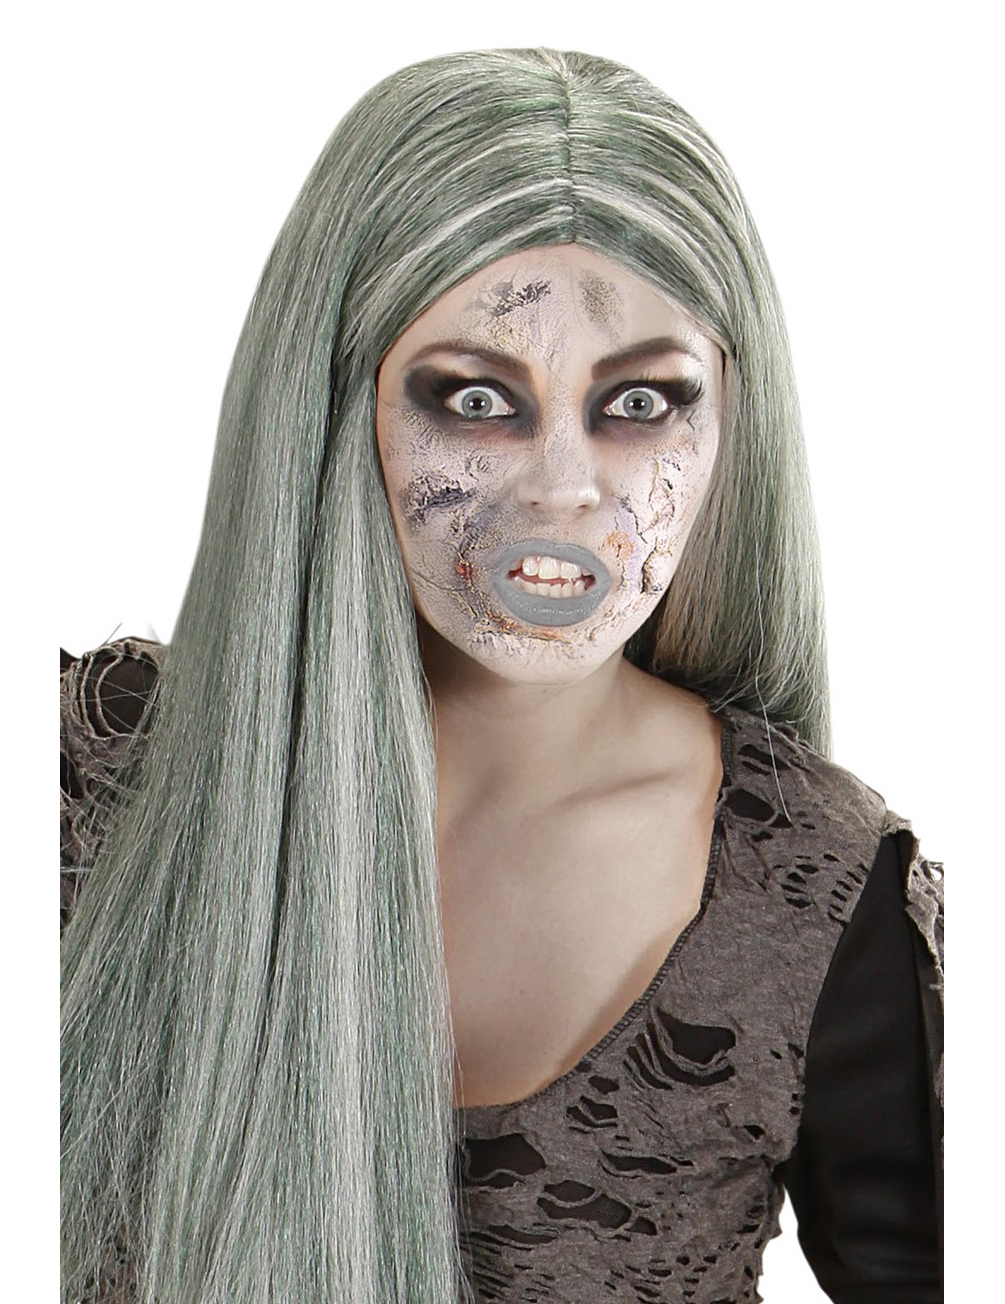 Flacon maquillage peau zombie adulte halloween d coration - Maquillage zombie simple ...